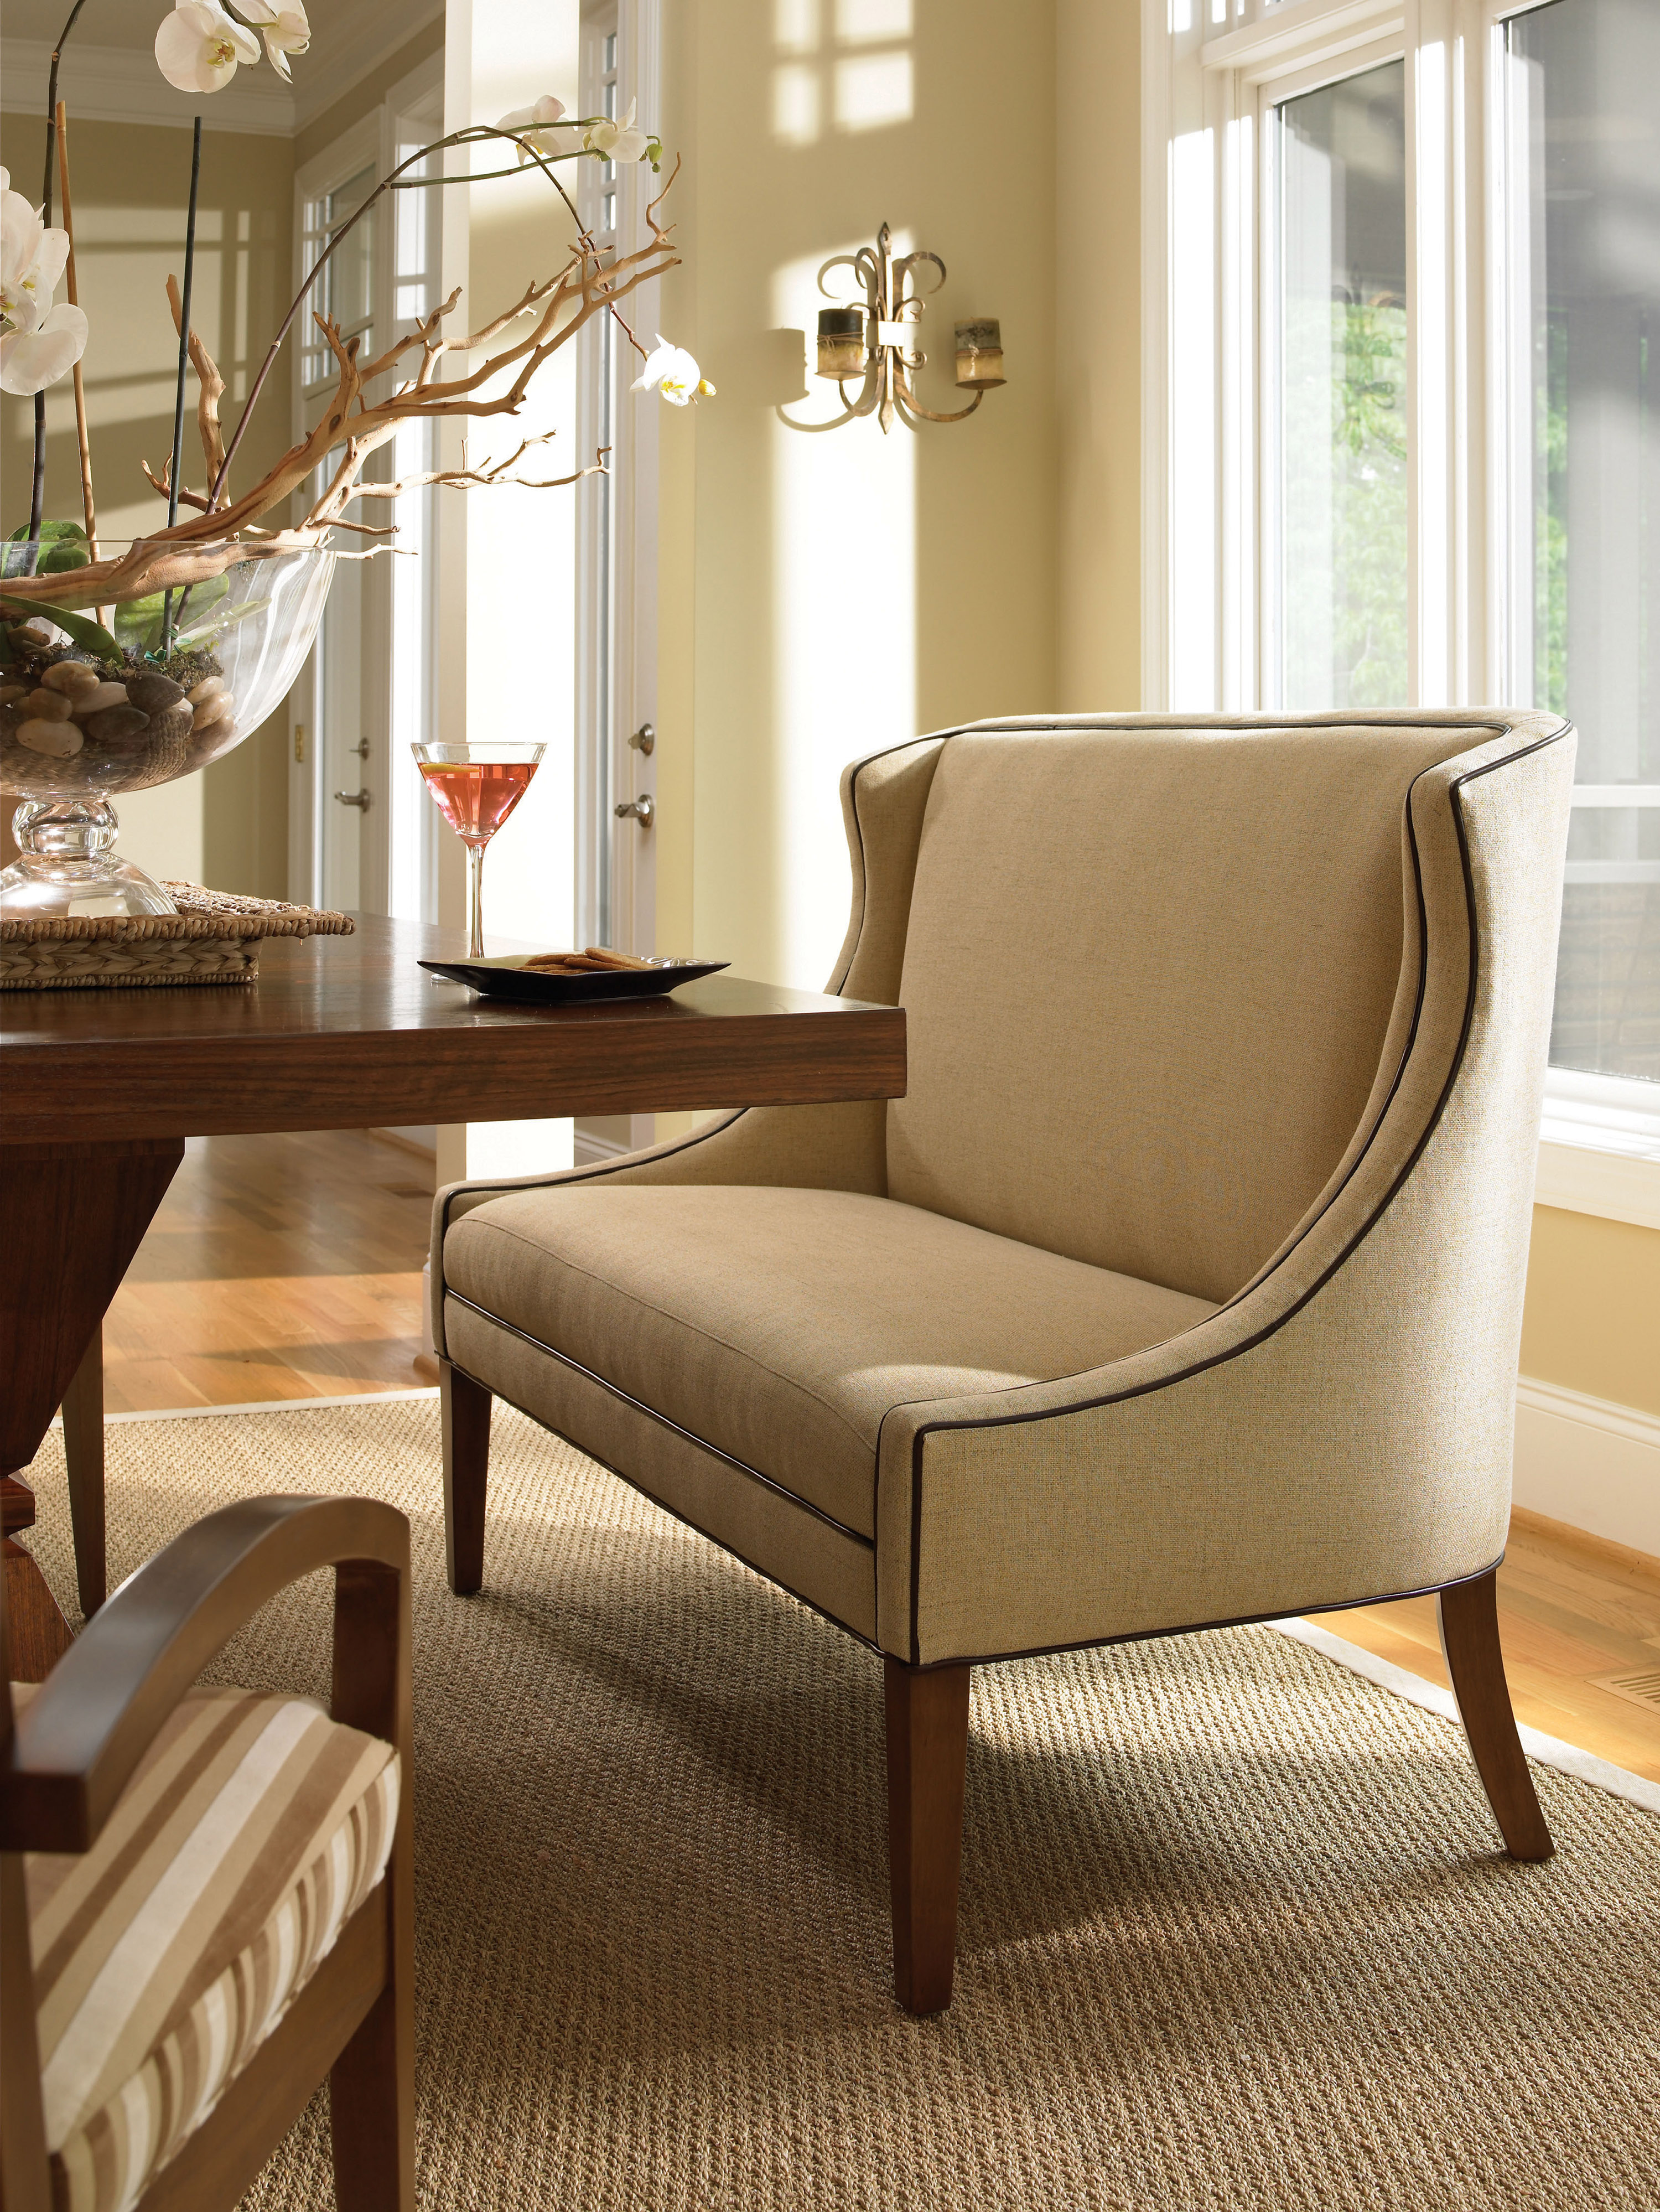 How to Get your Dining Room Thanksgiving Ready  Part 2  The Goldilocks Dilemma AKA Finding the